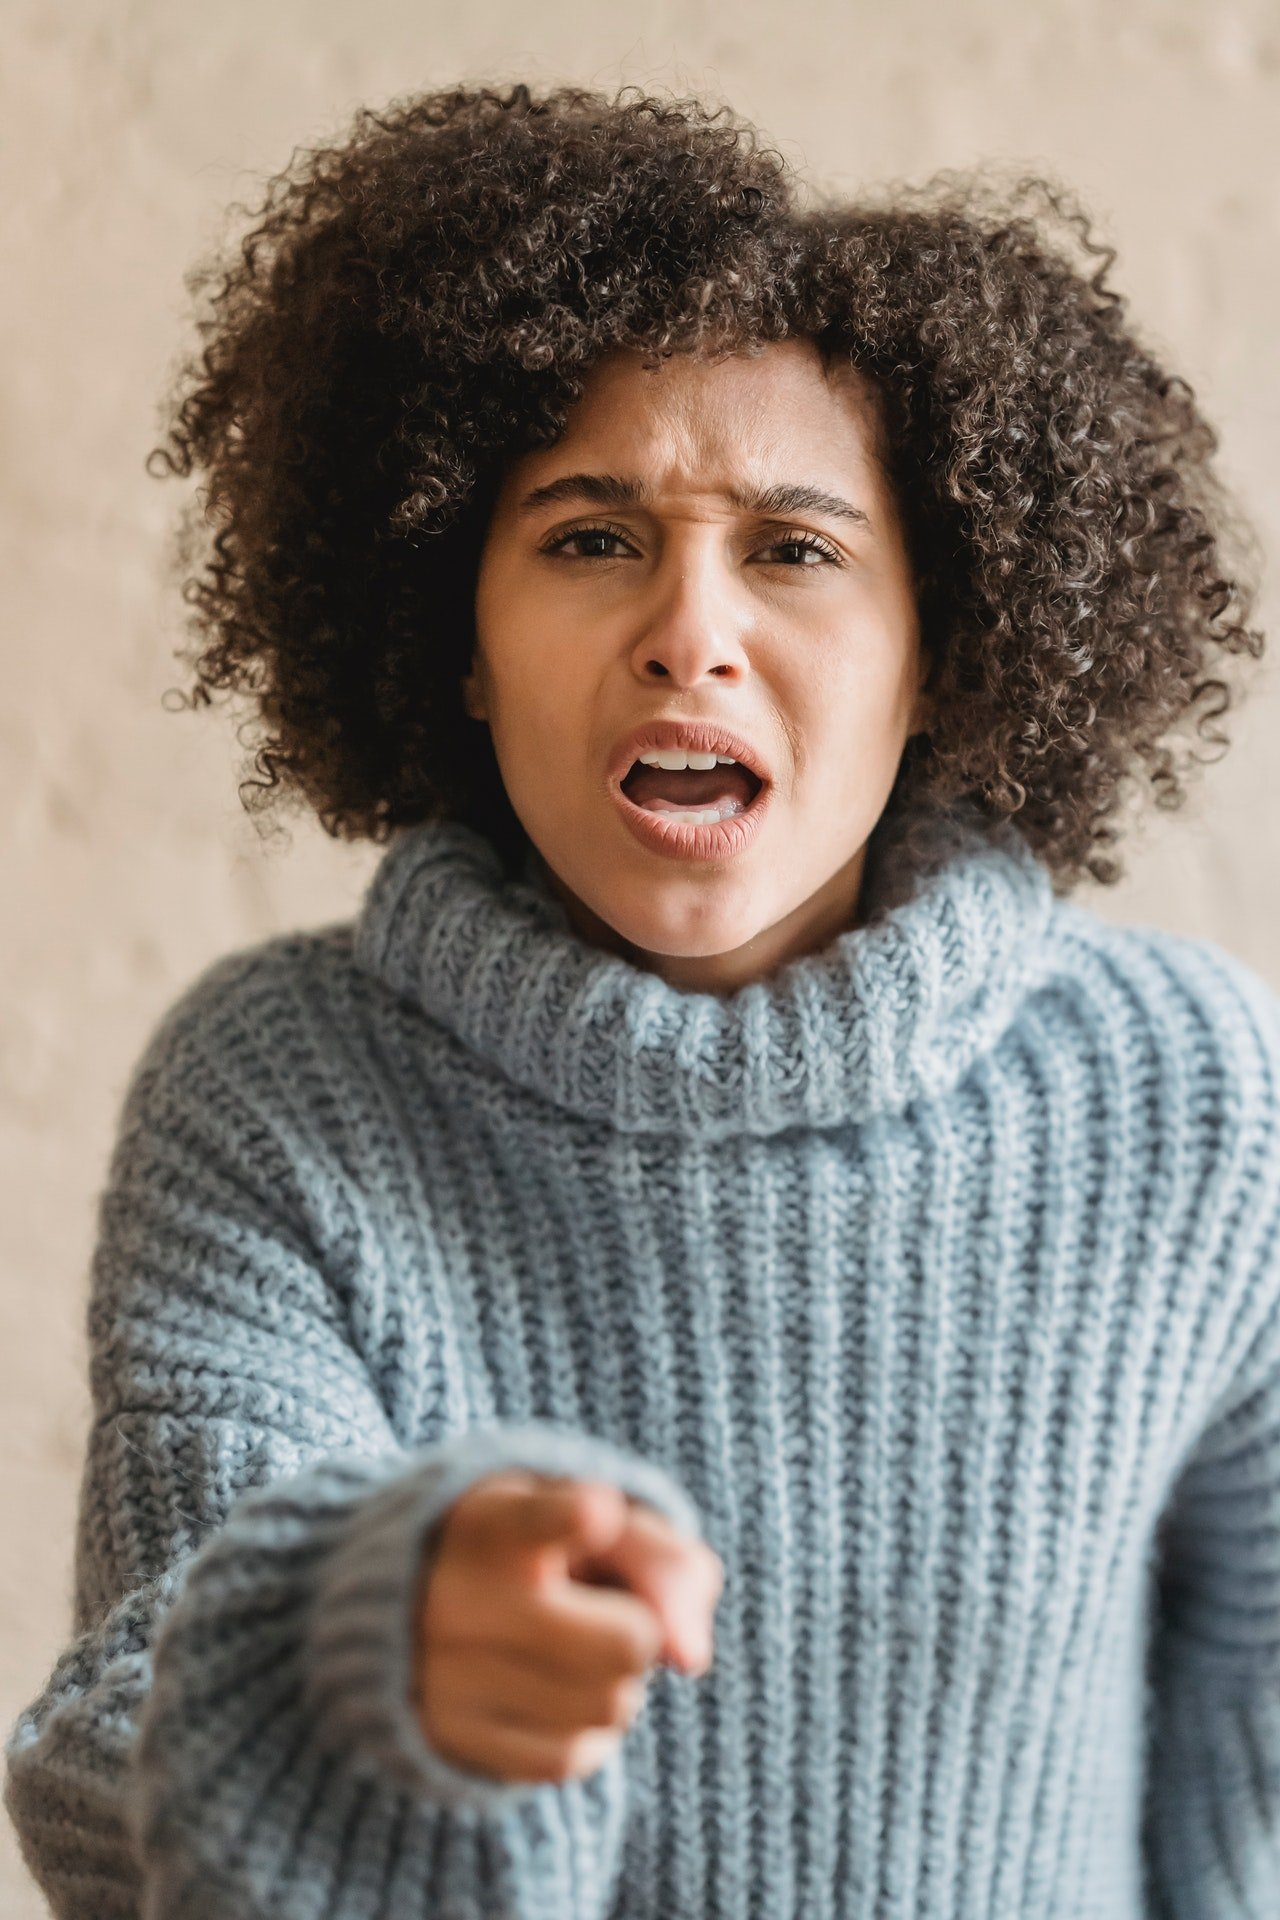 An apparently angry woman who appears to be disappointed.   Photo: Pexels